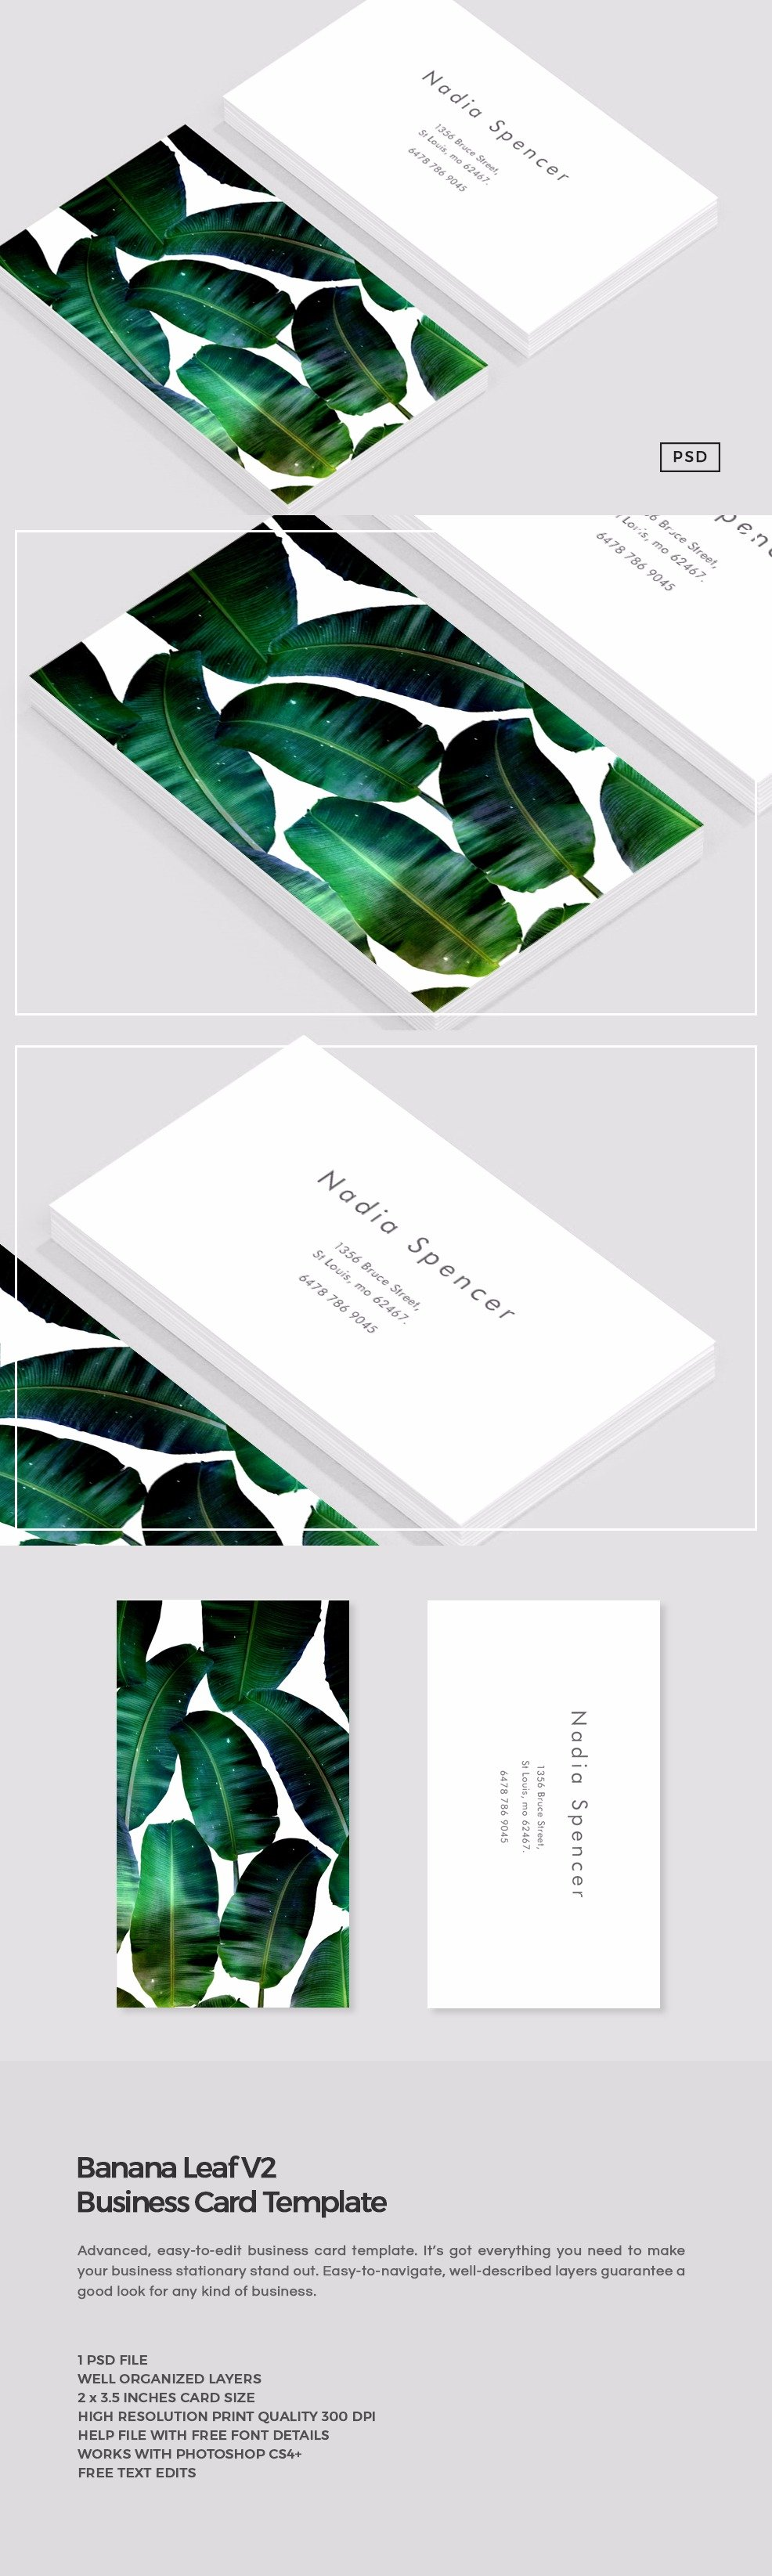 Banana Leaf Business Card Template ~ Business Card Templates ...